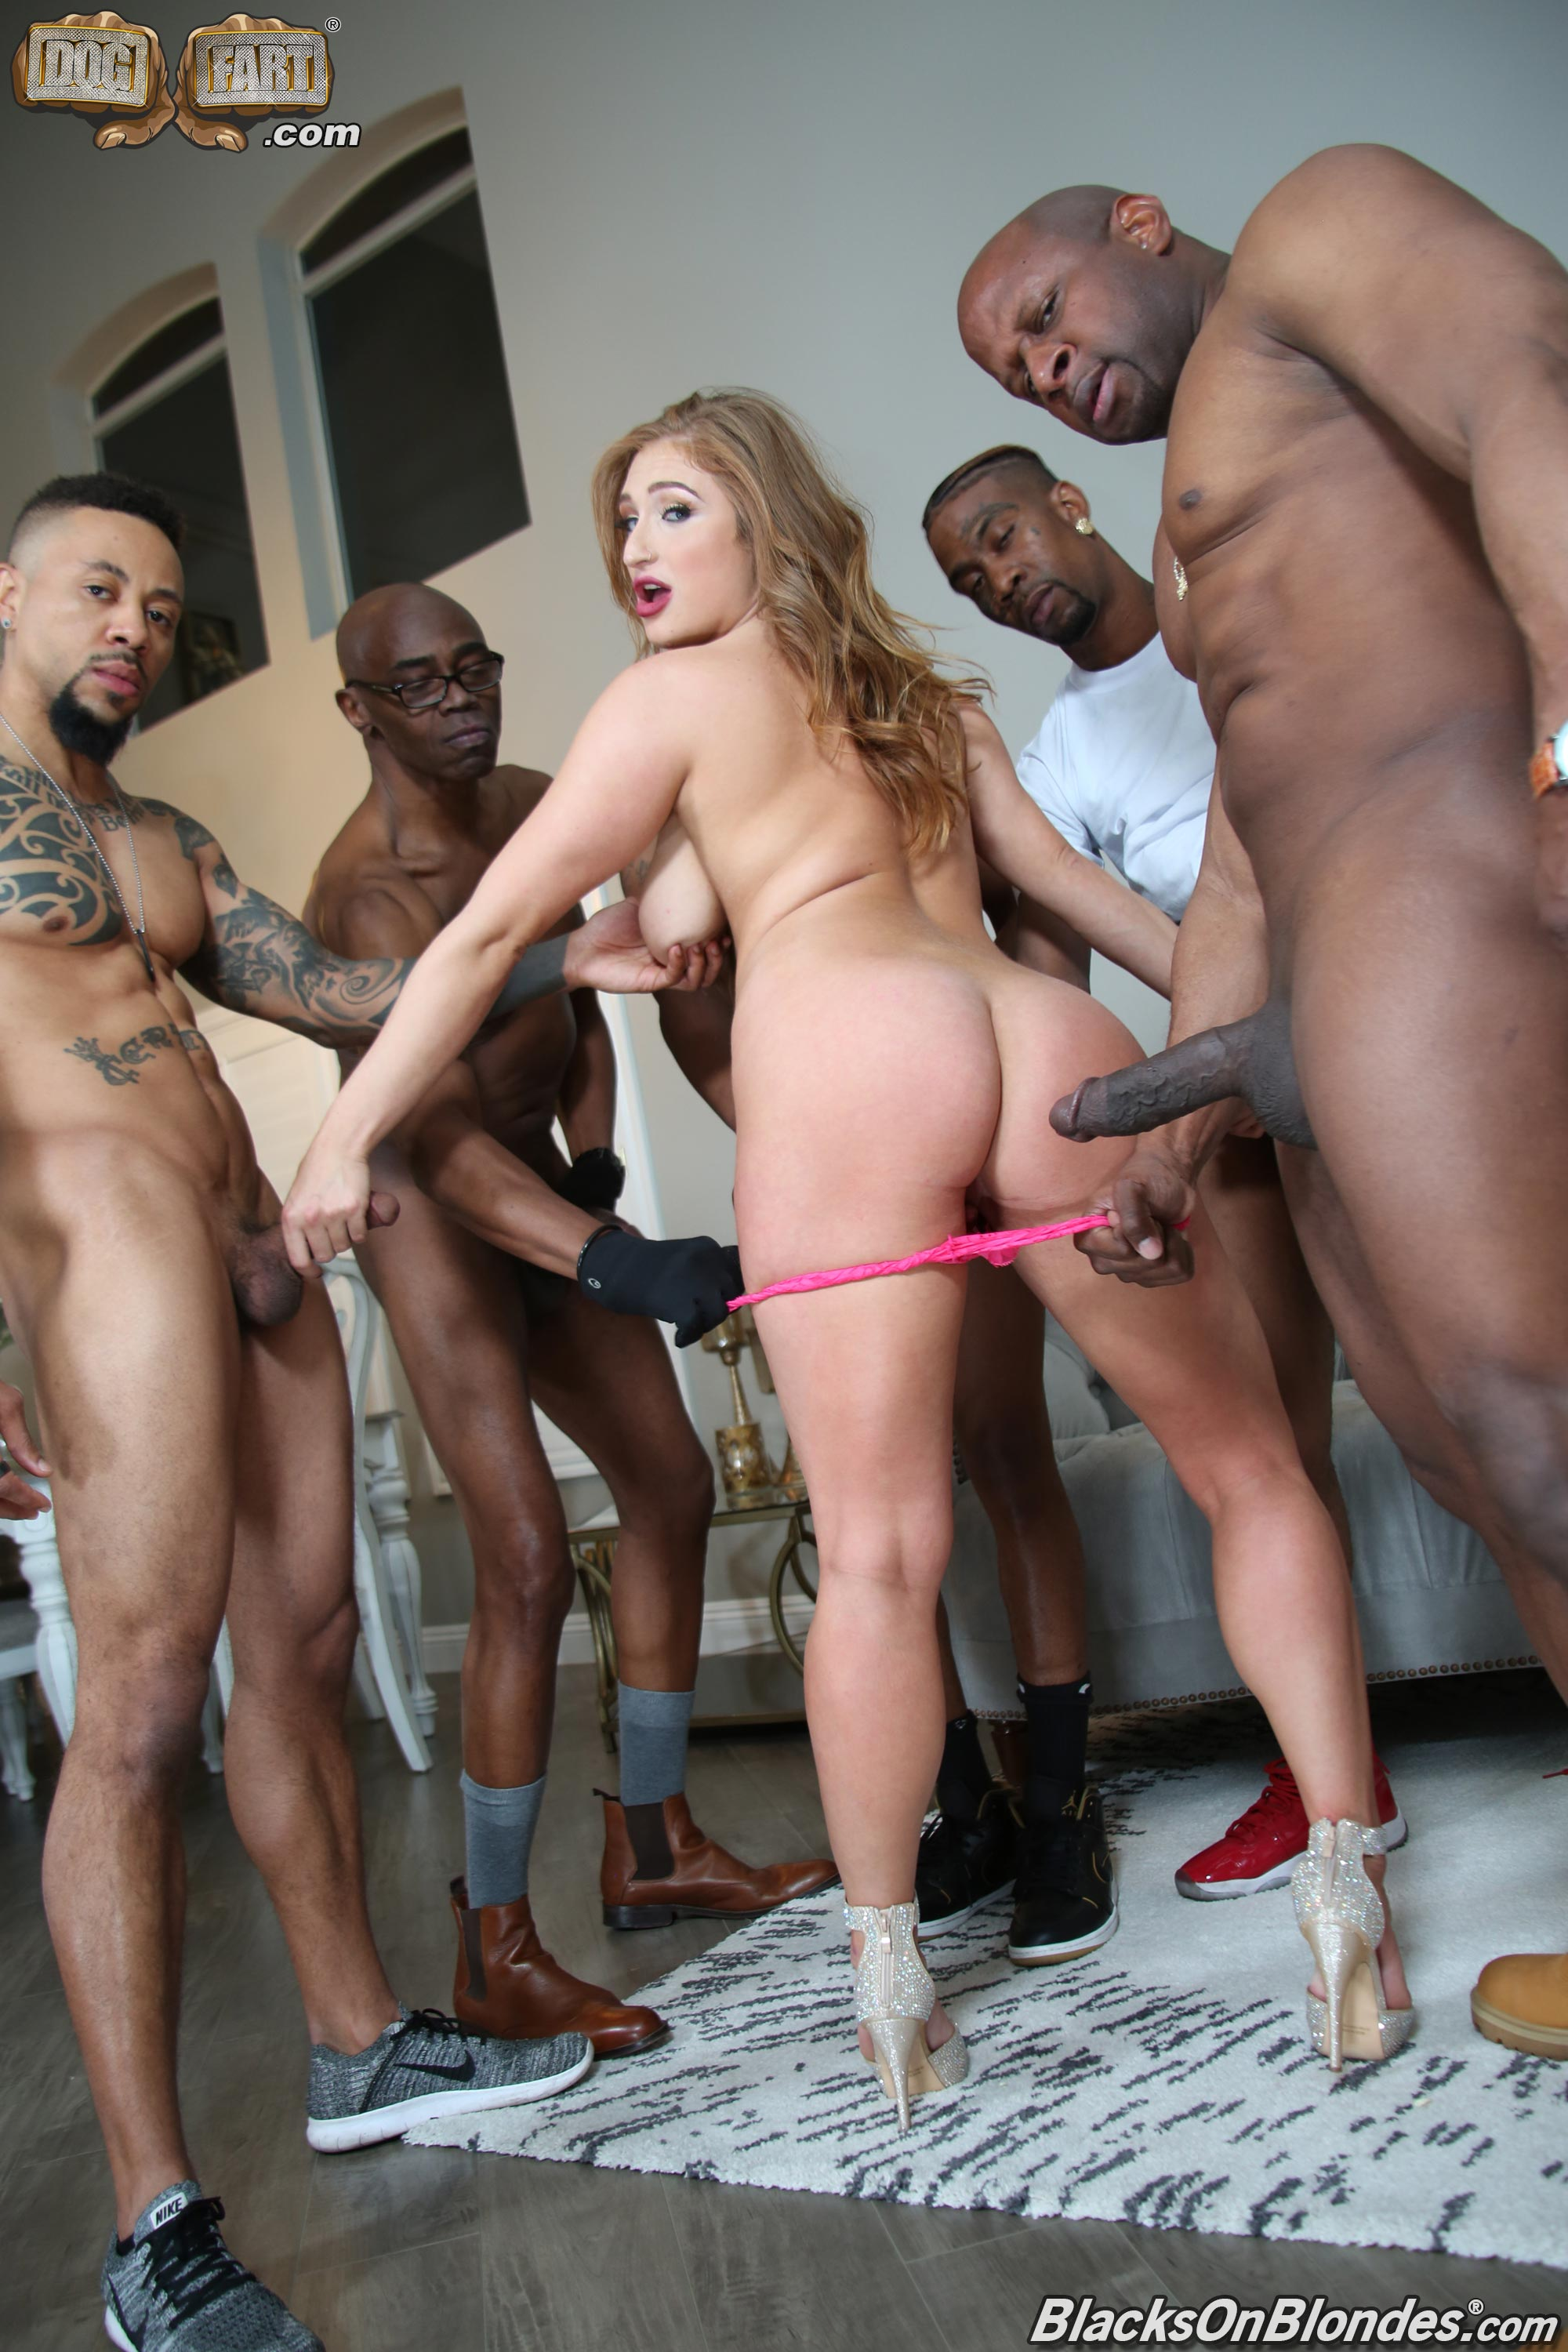 Dogfart 'Skylar Snow - Blacks On Blondes' starring Skylar Snow (photo 13)